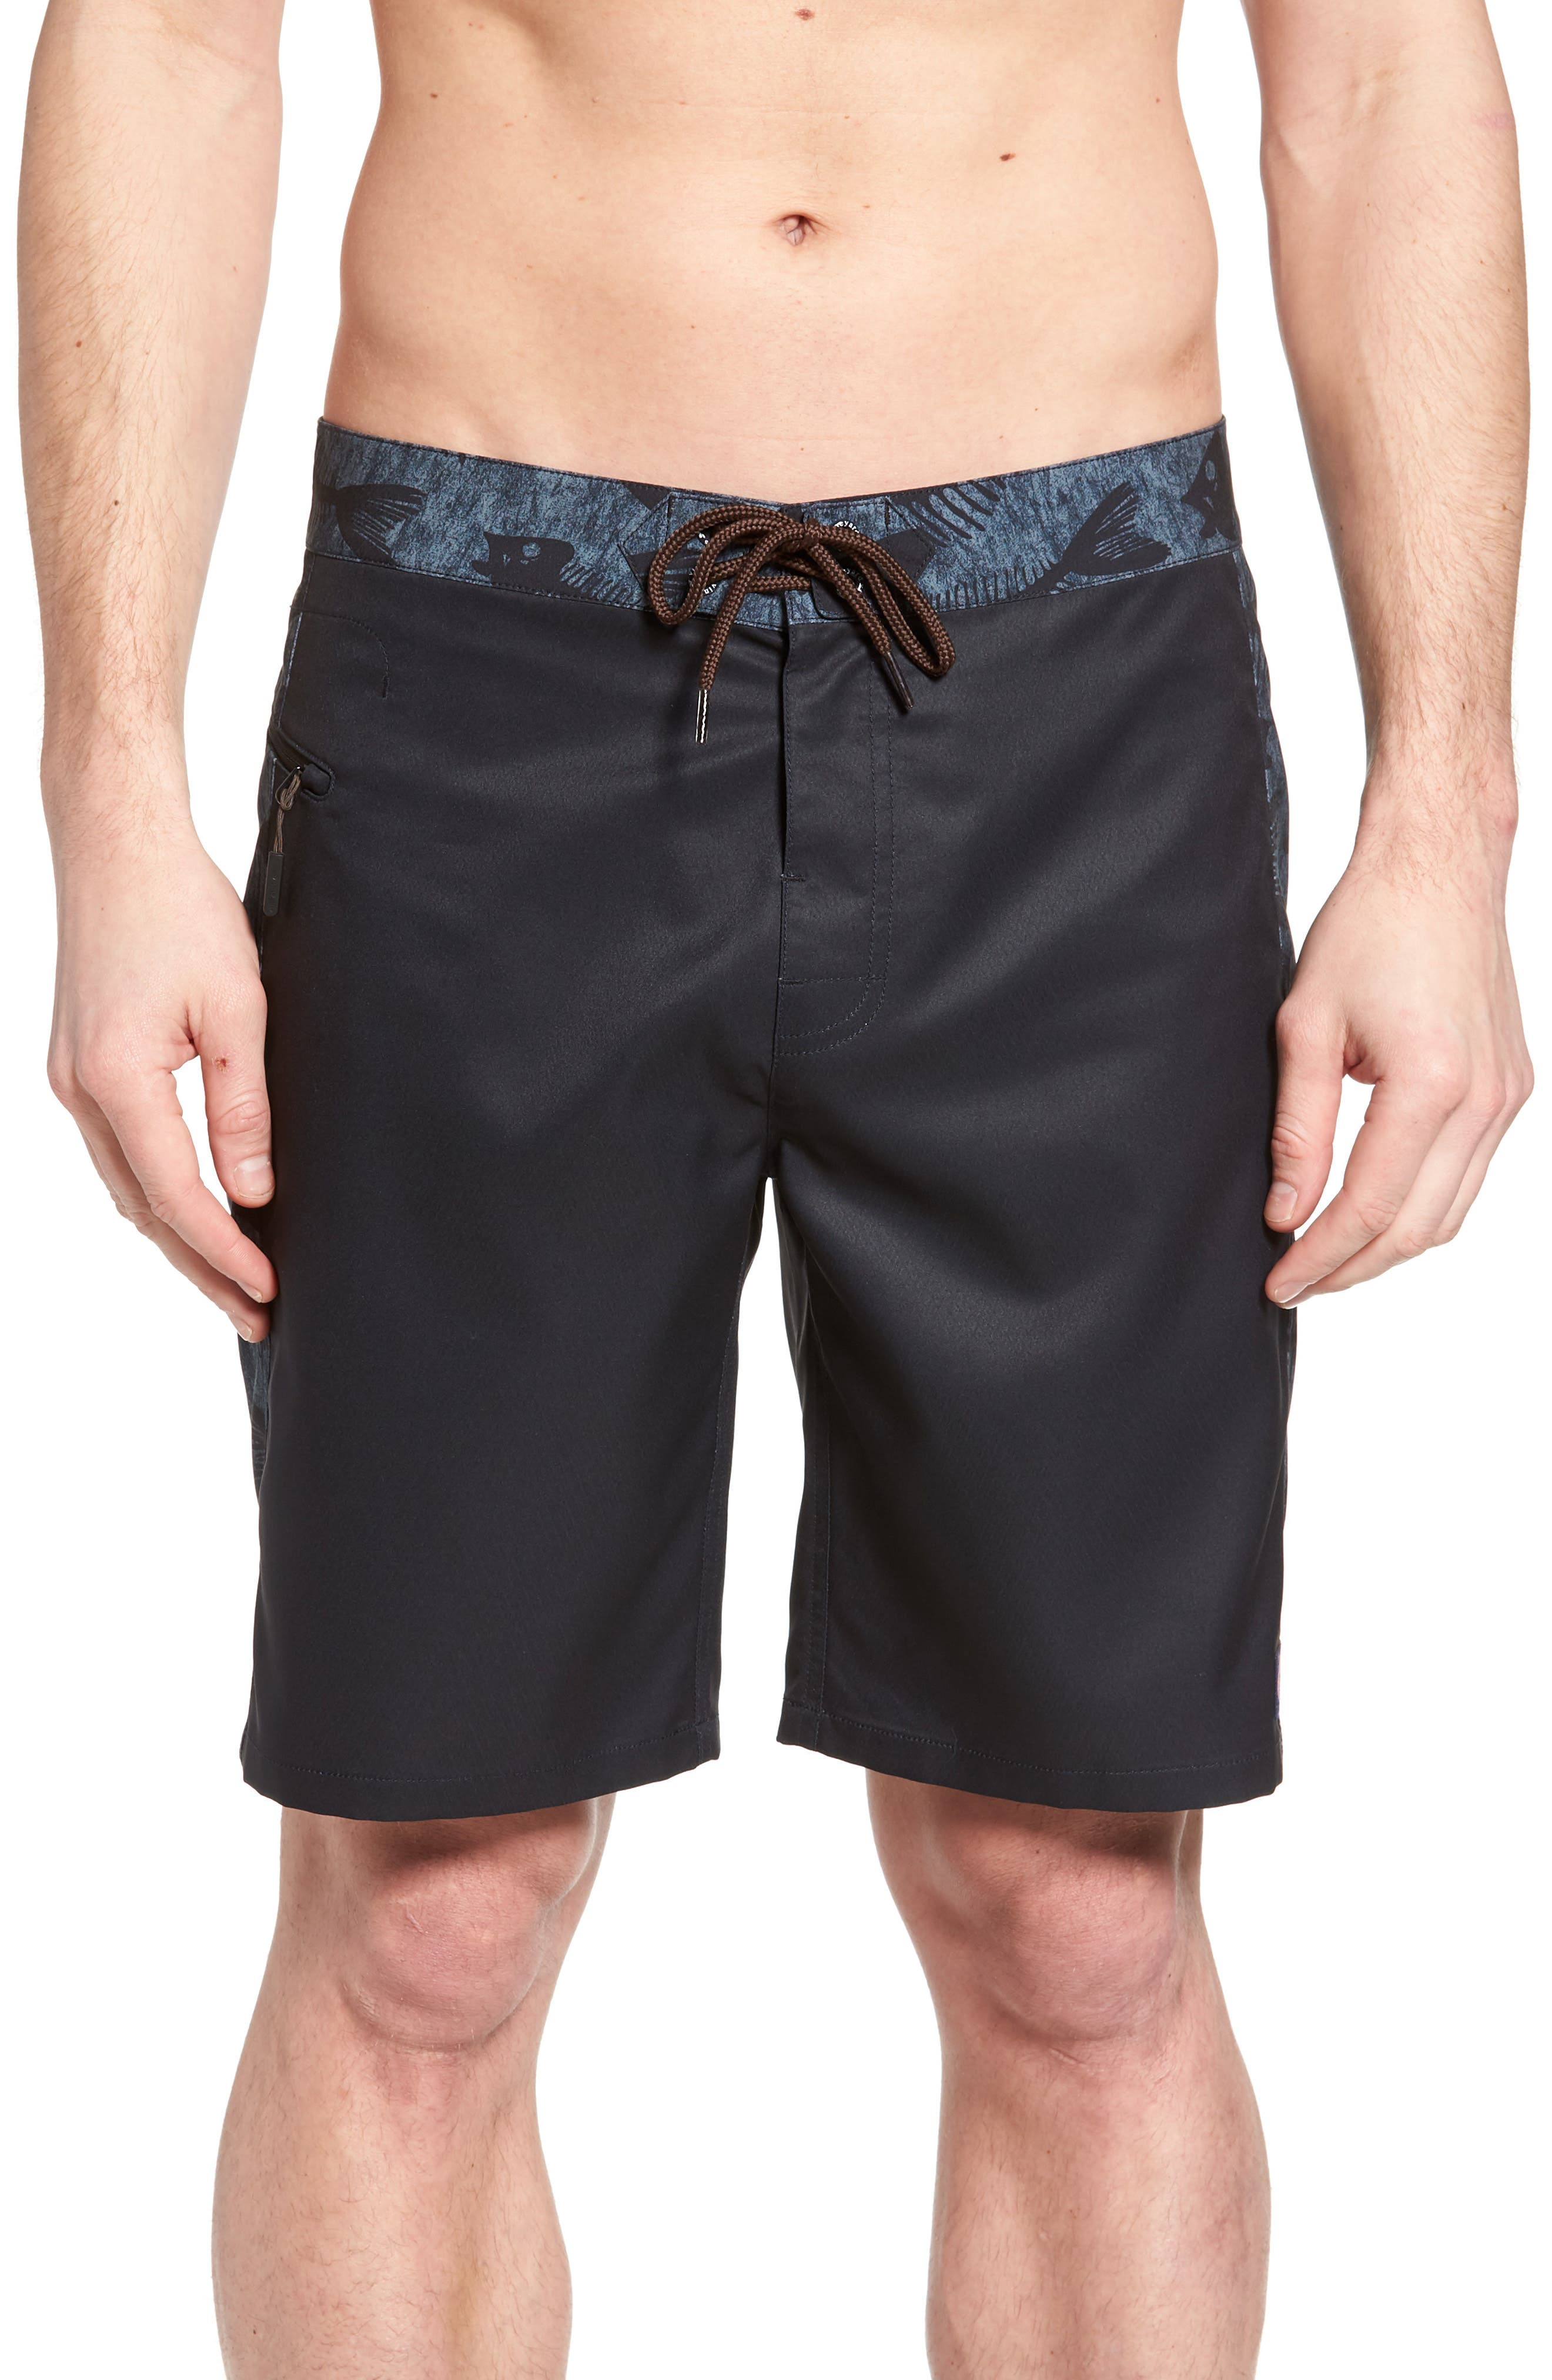 Bonefish Board Shorts,                             Main thumbnail 1, color,                             Charcoal Grey